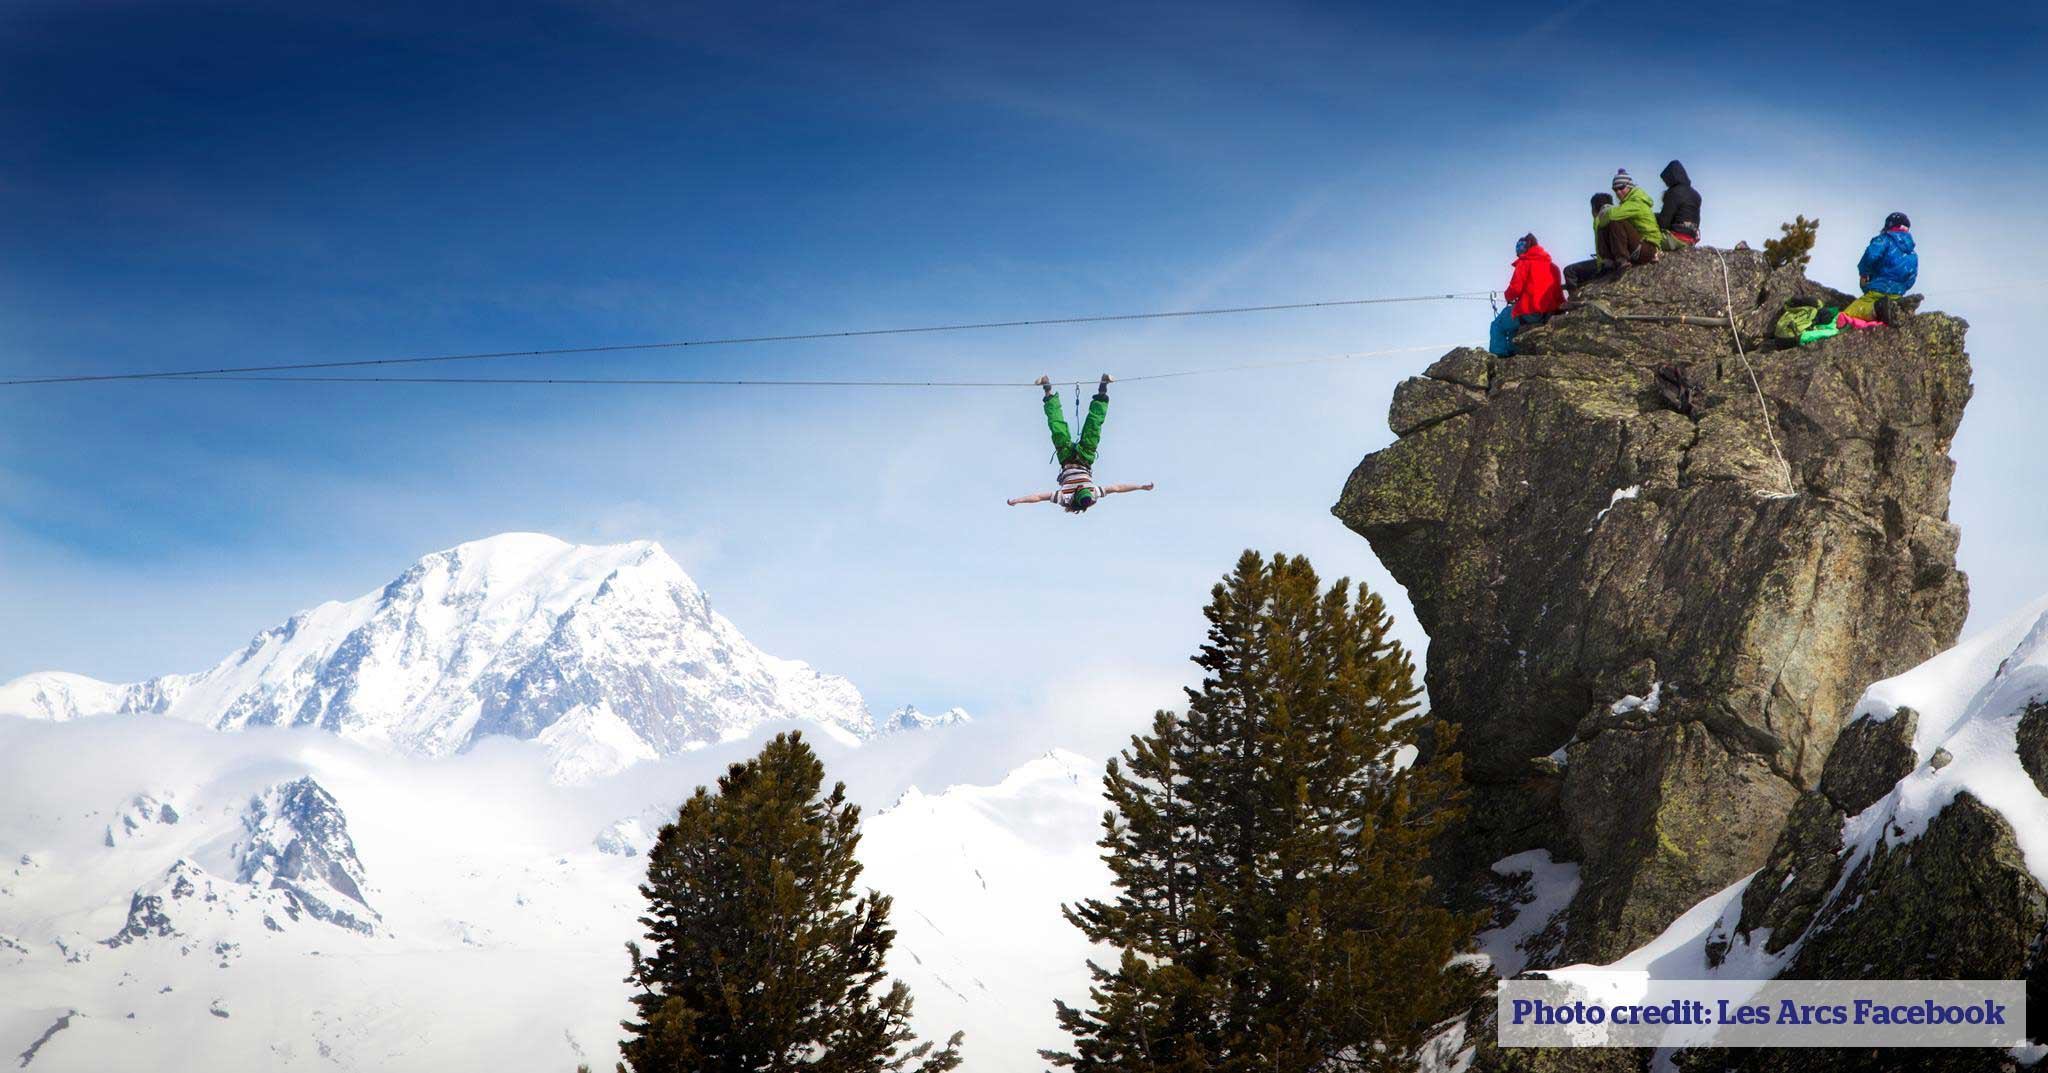 Highwire in Les Arcs